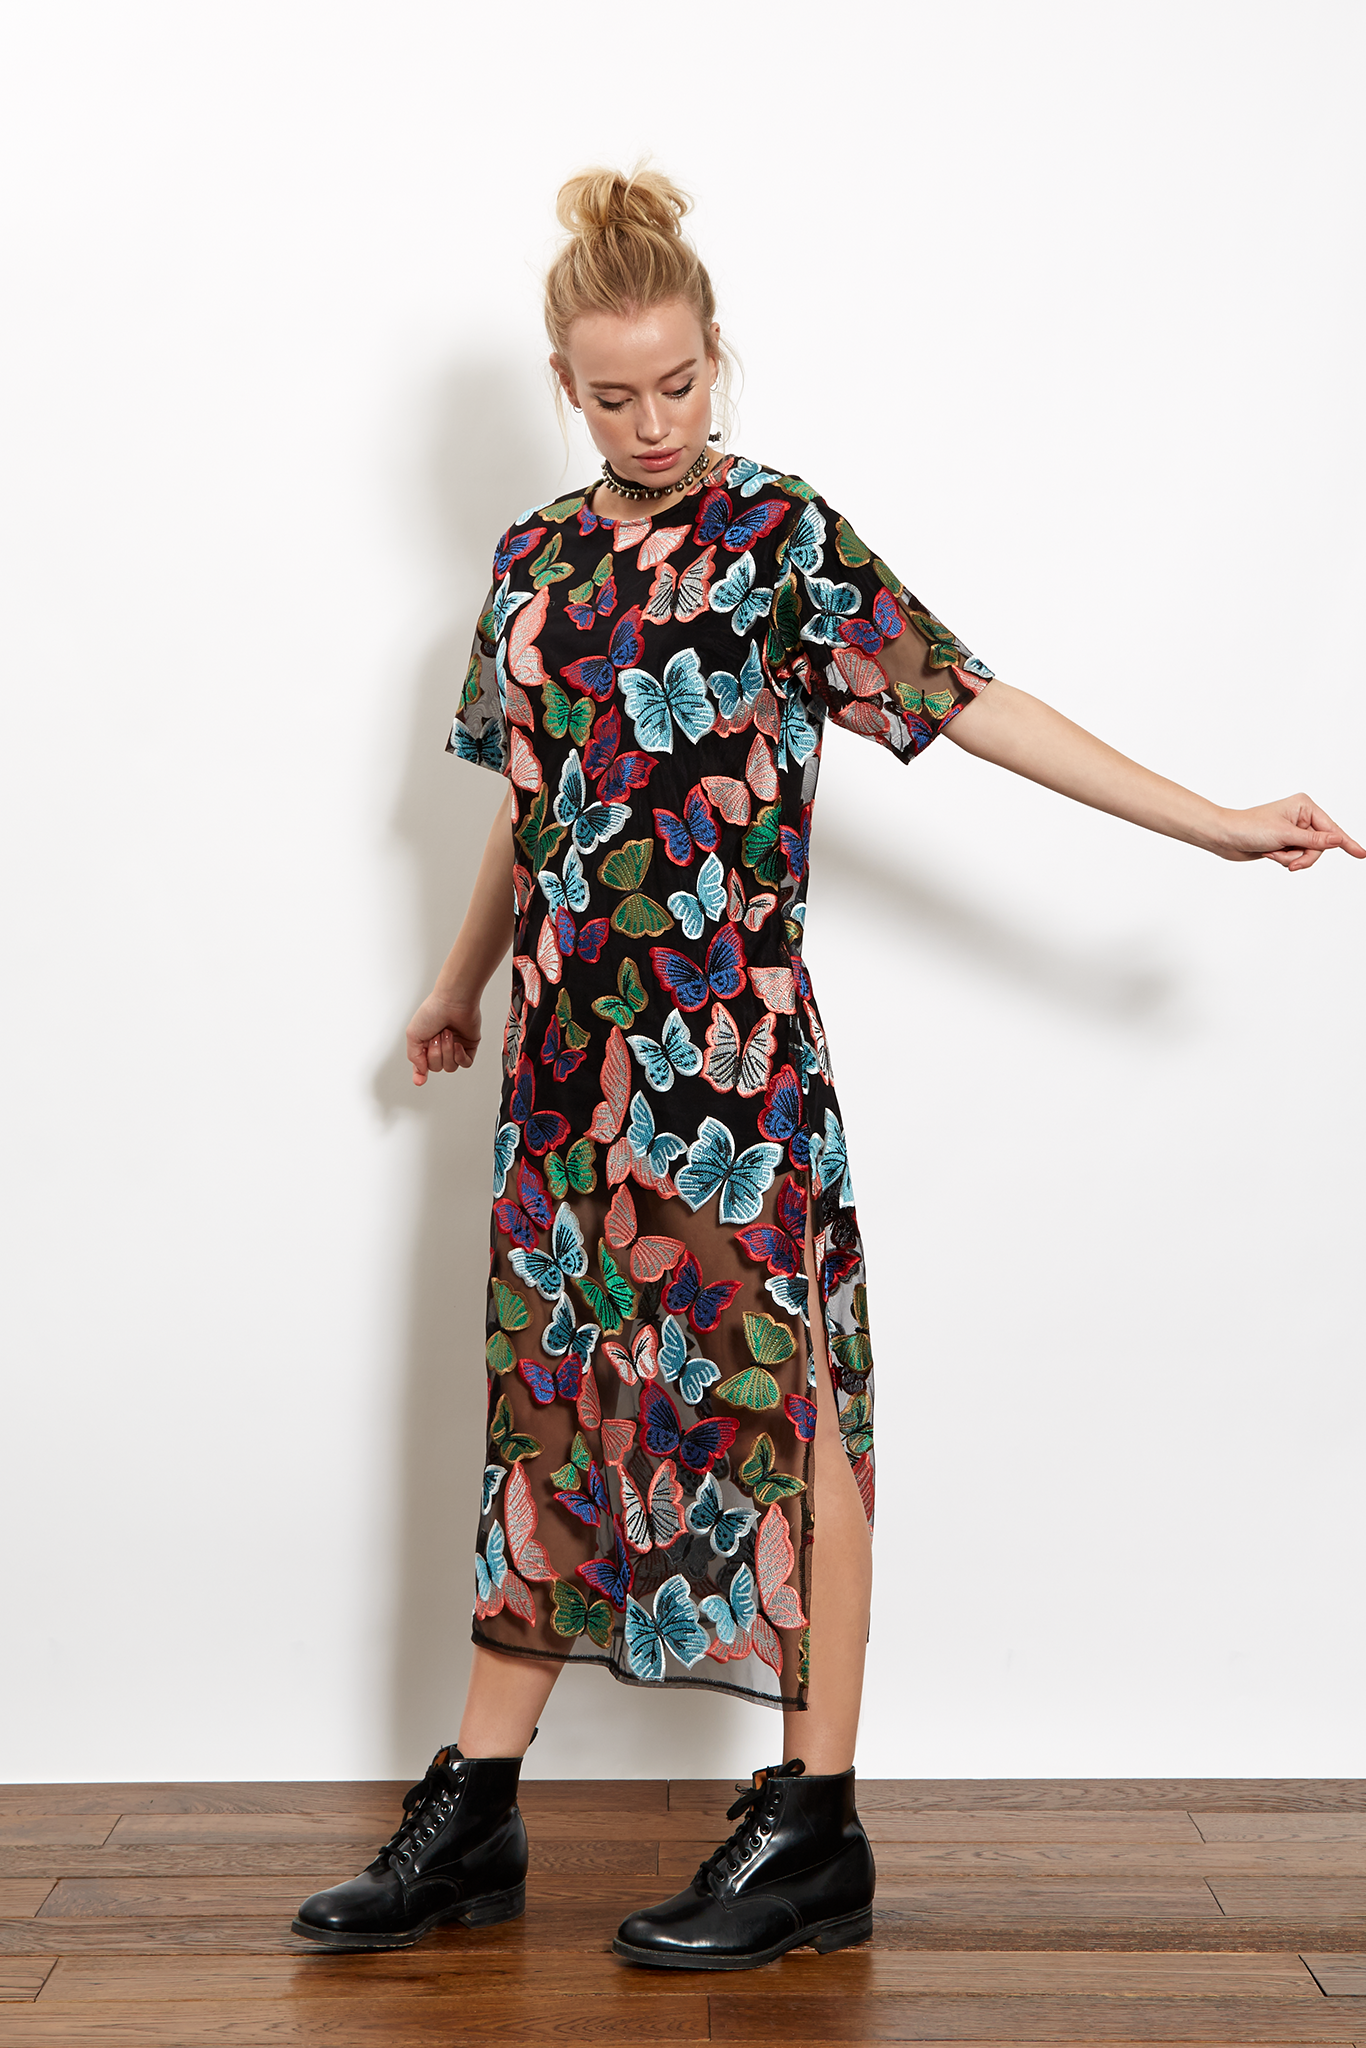 daa106ef861 Sheer navy chiffon maxi t-shirt dress with all over multicolour butterfly  embroidery. Featuring button fastening at back neck and side slits.